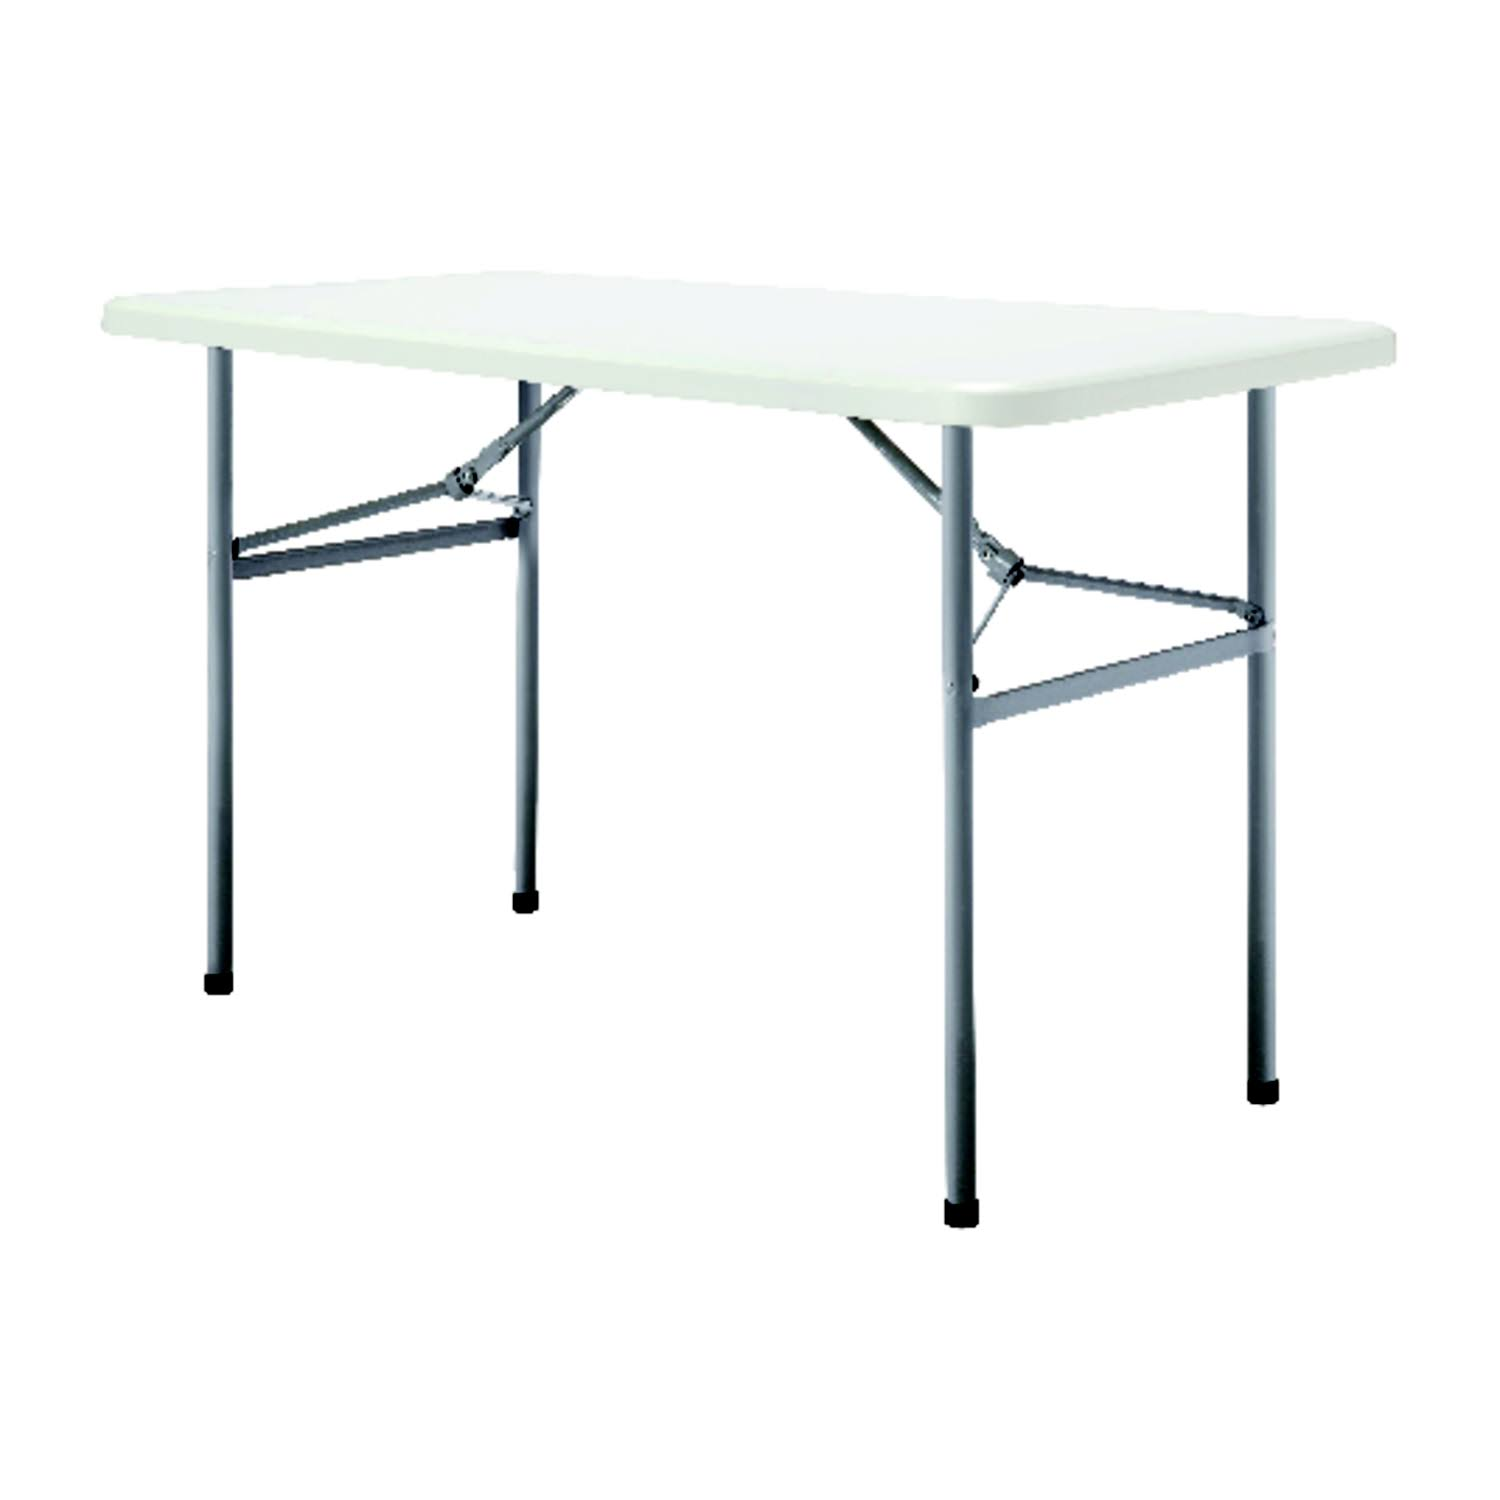 Living Accents 29-1/4 in. H x 24 in. W x 48 in. L Rectangular Folding Table